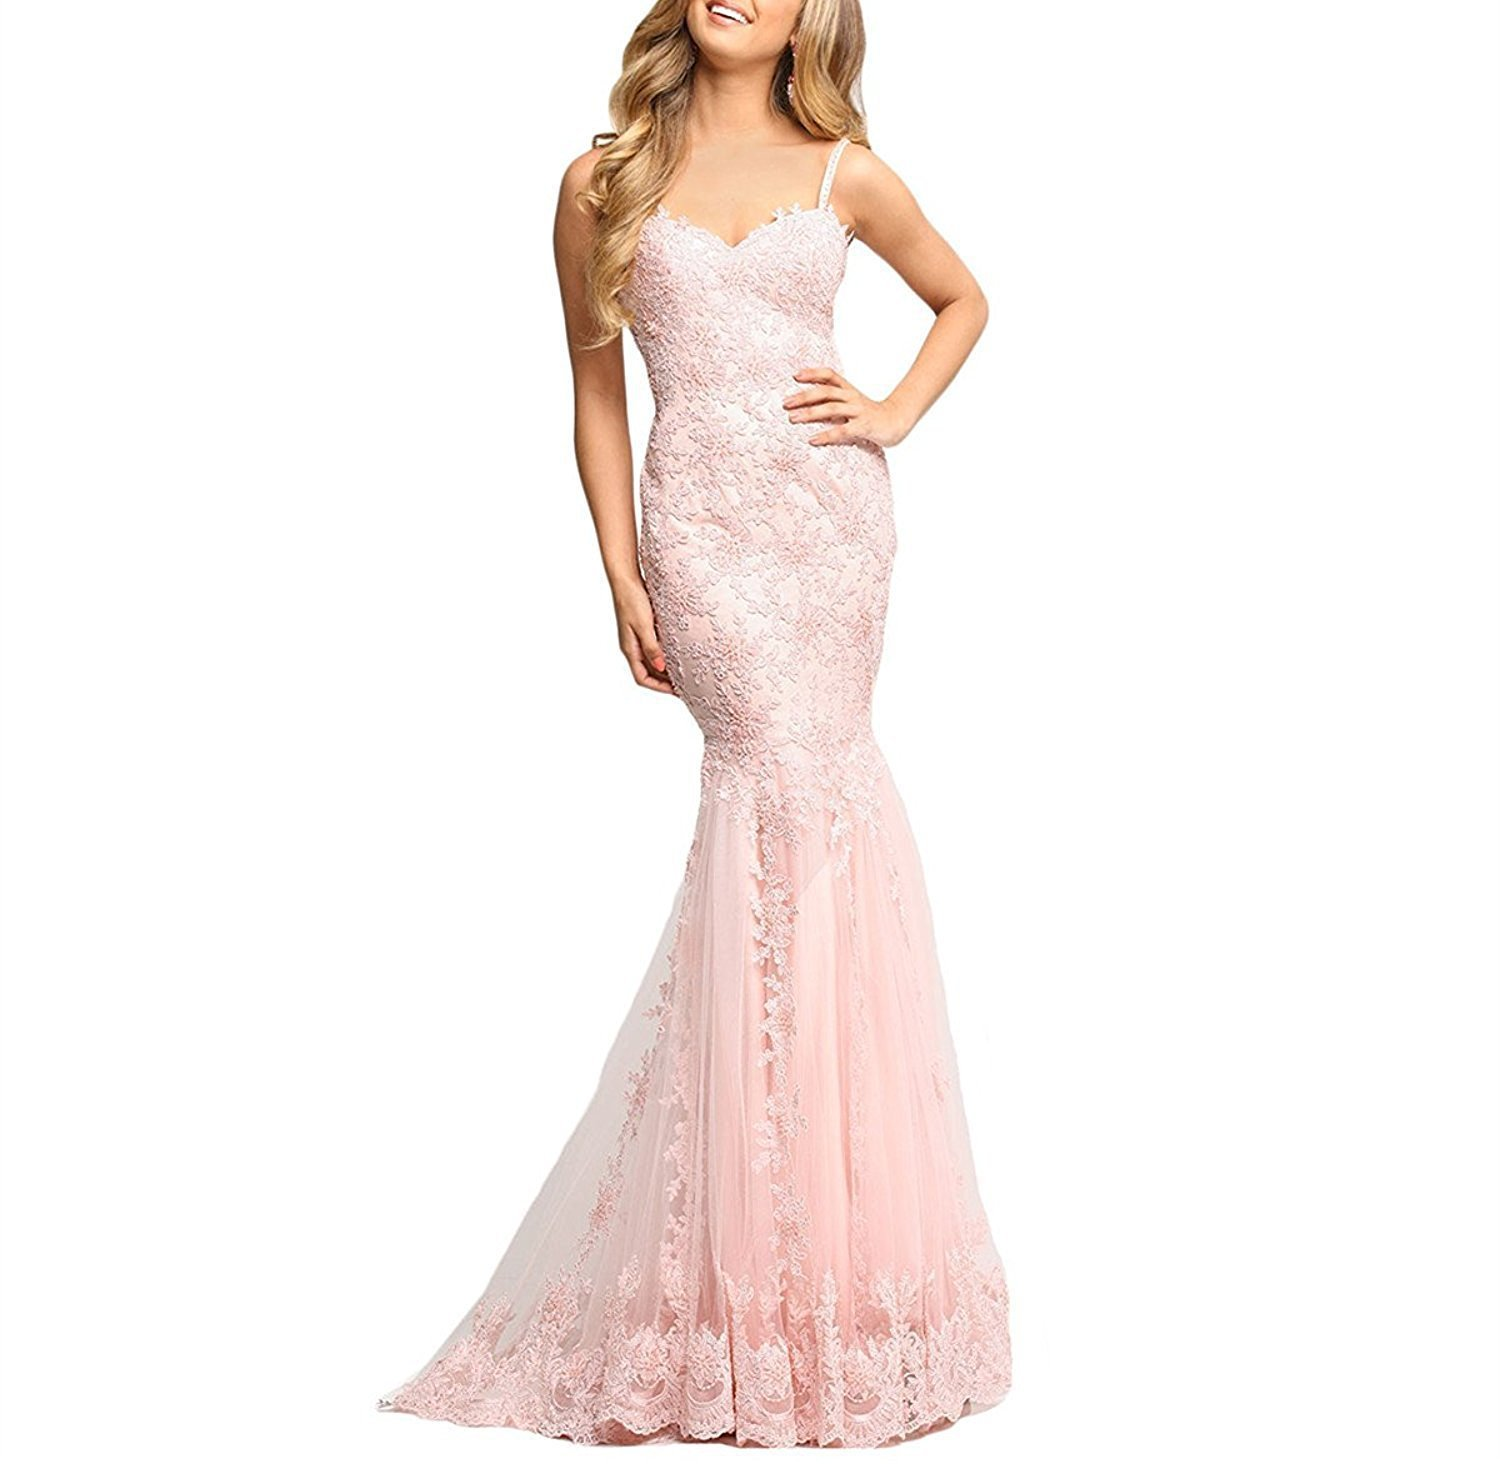 Women's 2018 Long Lace Mermaid Prom Dresses Formal Evening Gown Size 6 Blush